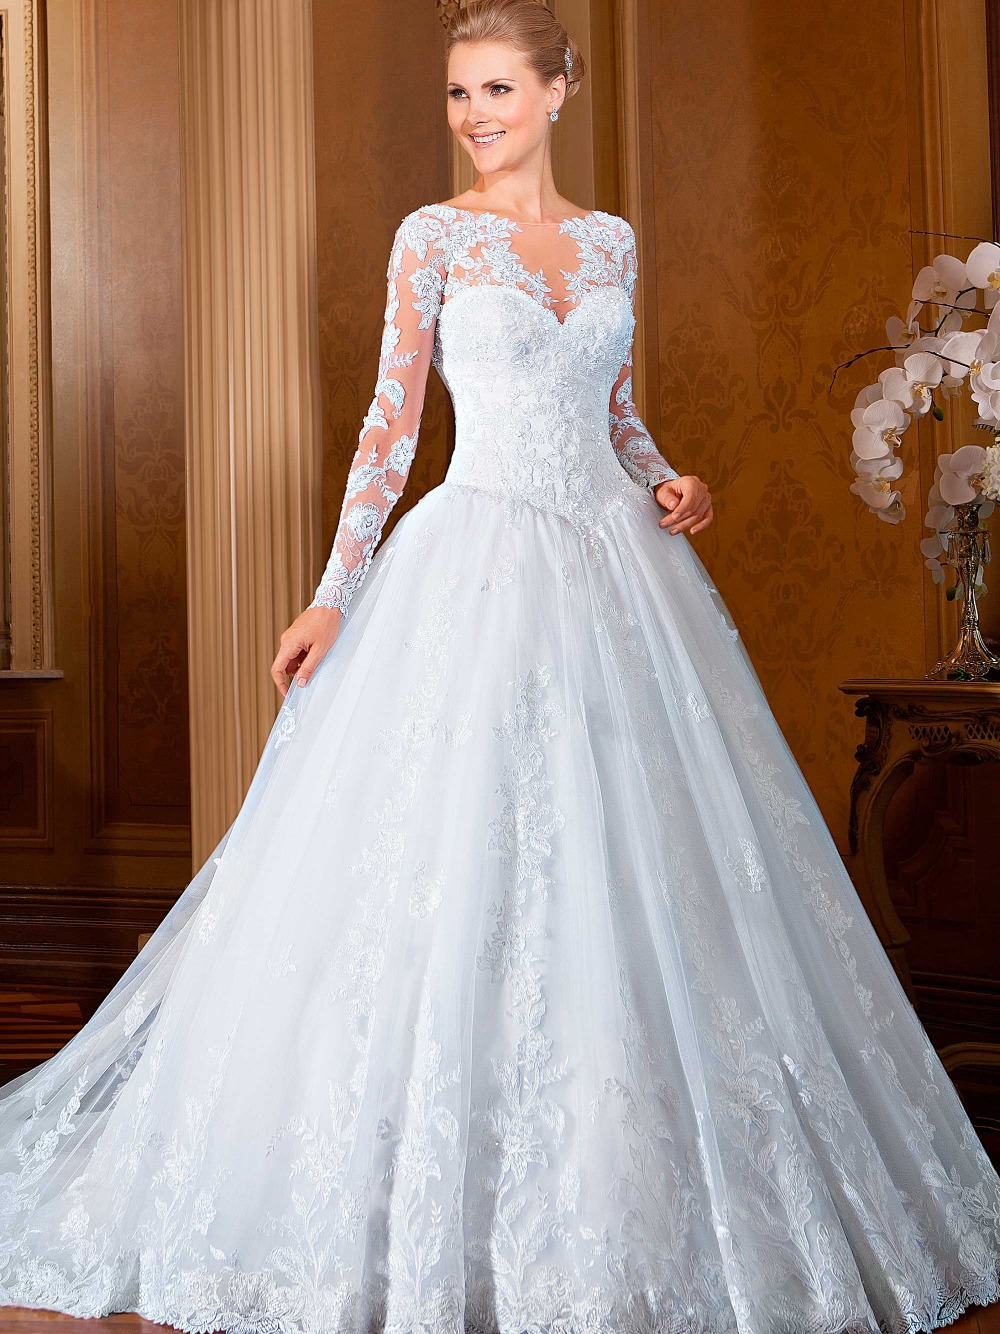 Aliexpress.com : Buy Long Sleeves Princess Style Wedding Dress Lace ...